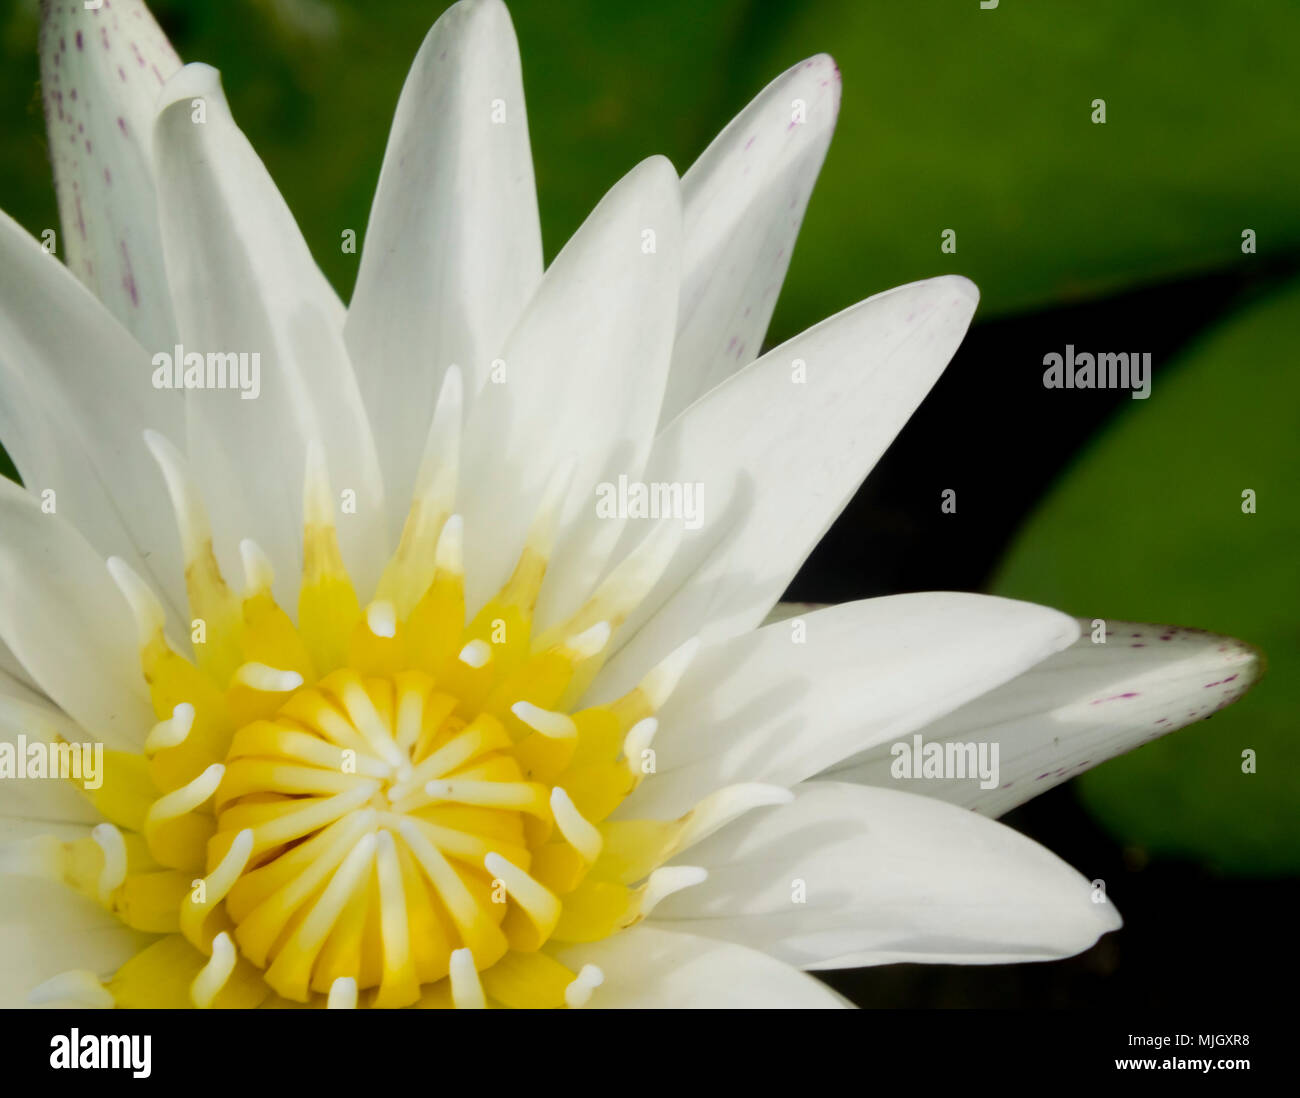 White lotus blossoms or water lily flowers blooming on pond stock white lotus blossoms or water lily flowers blooming on pond izmirmasajfo